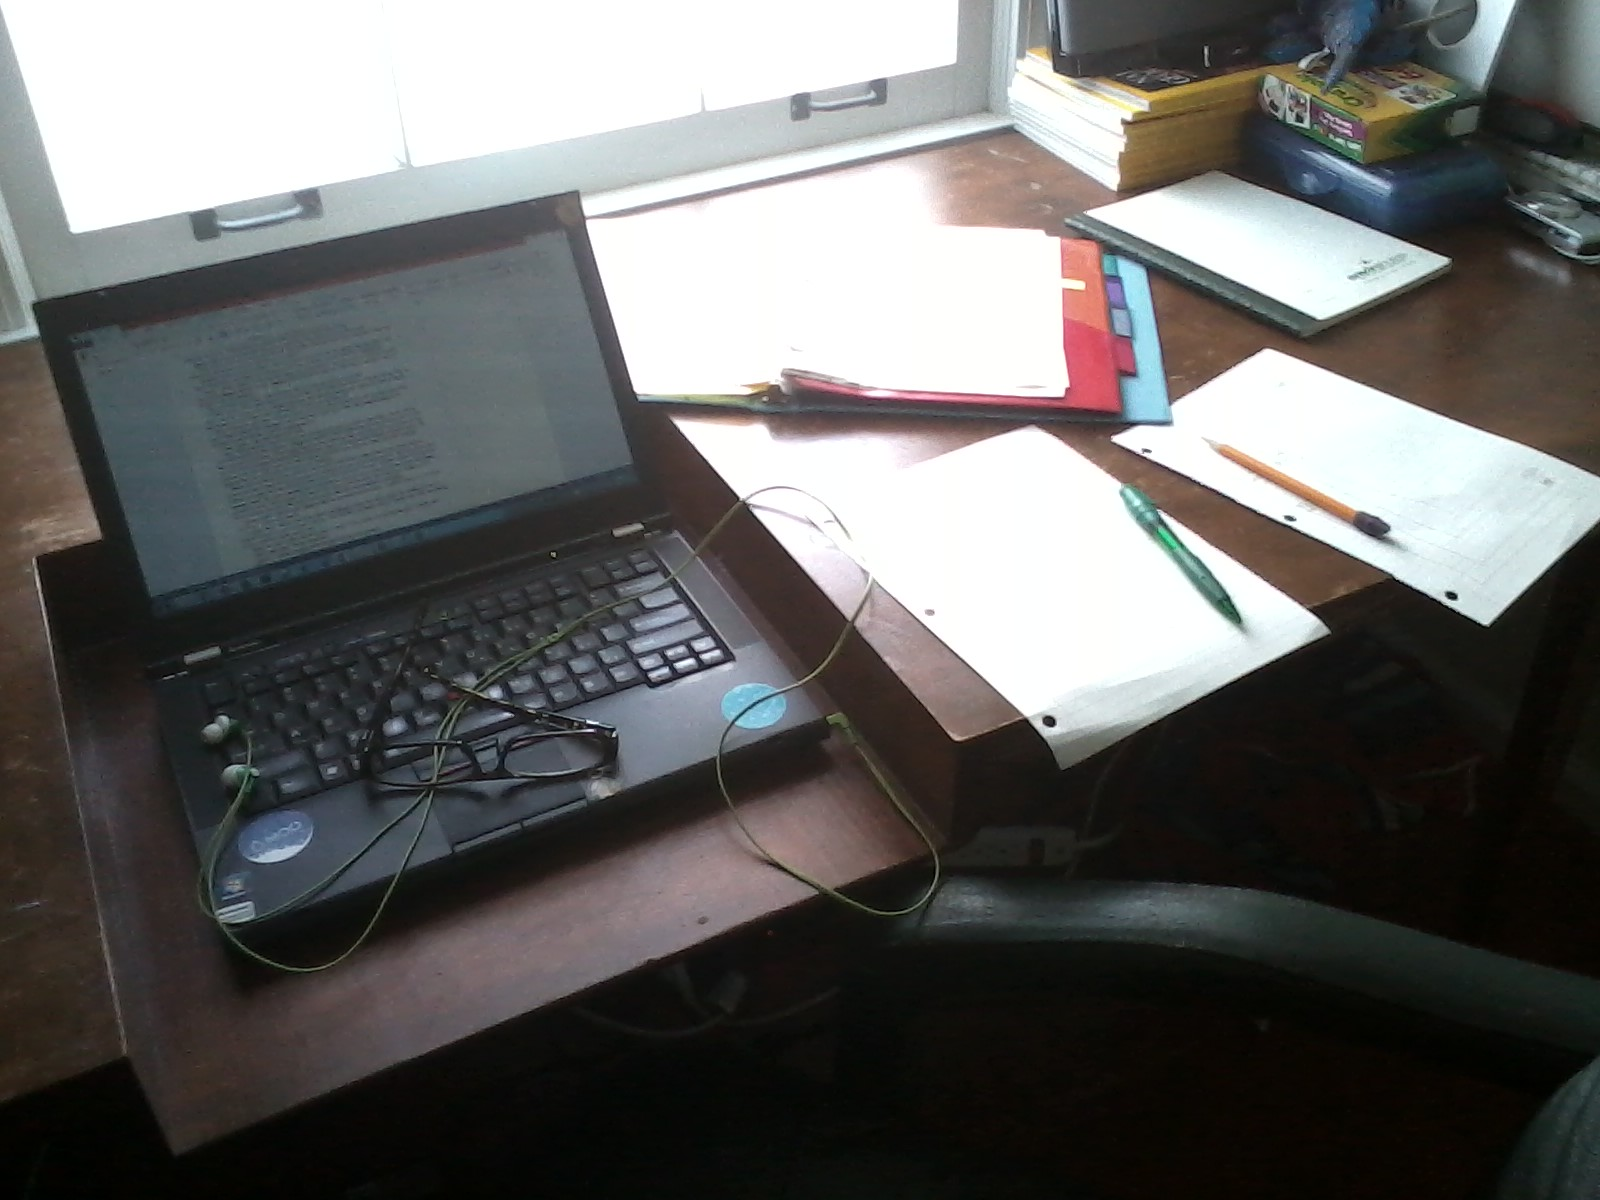 A picture of the writing space I used today.